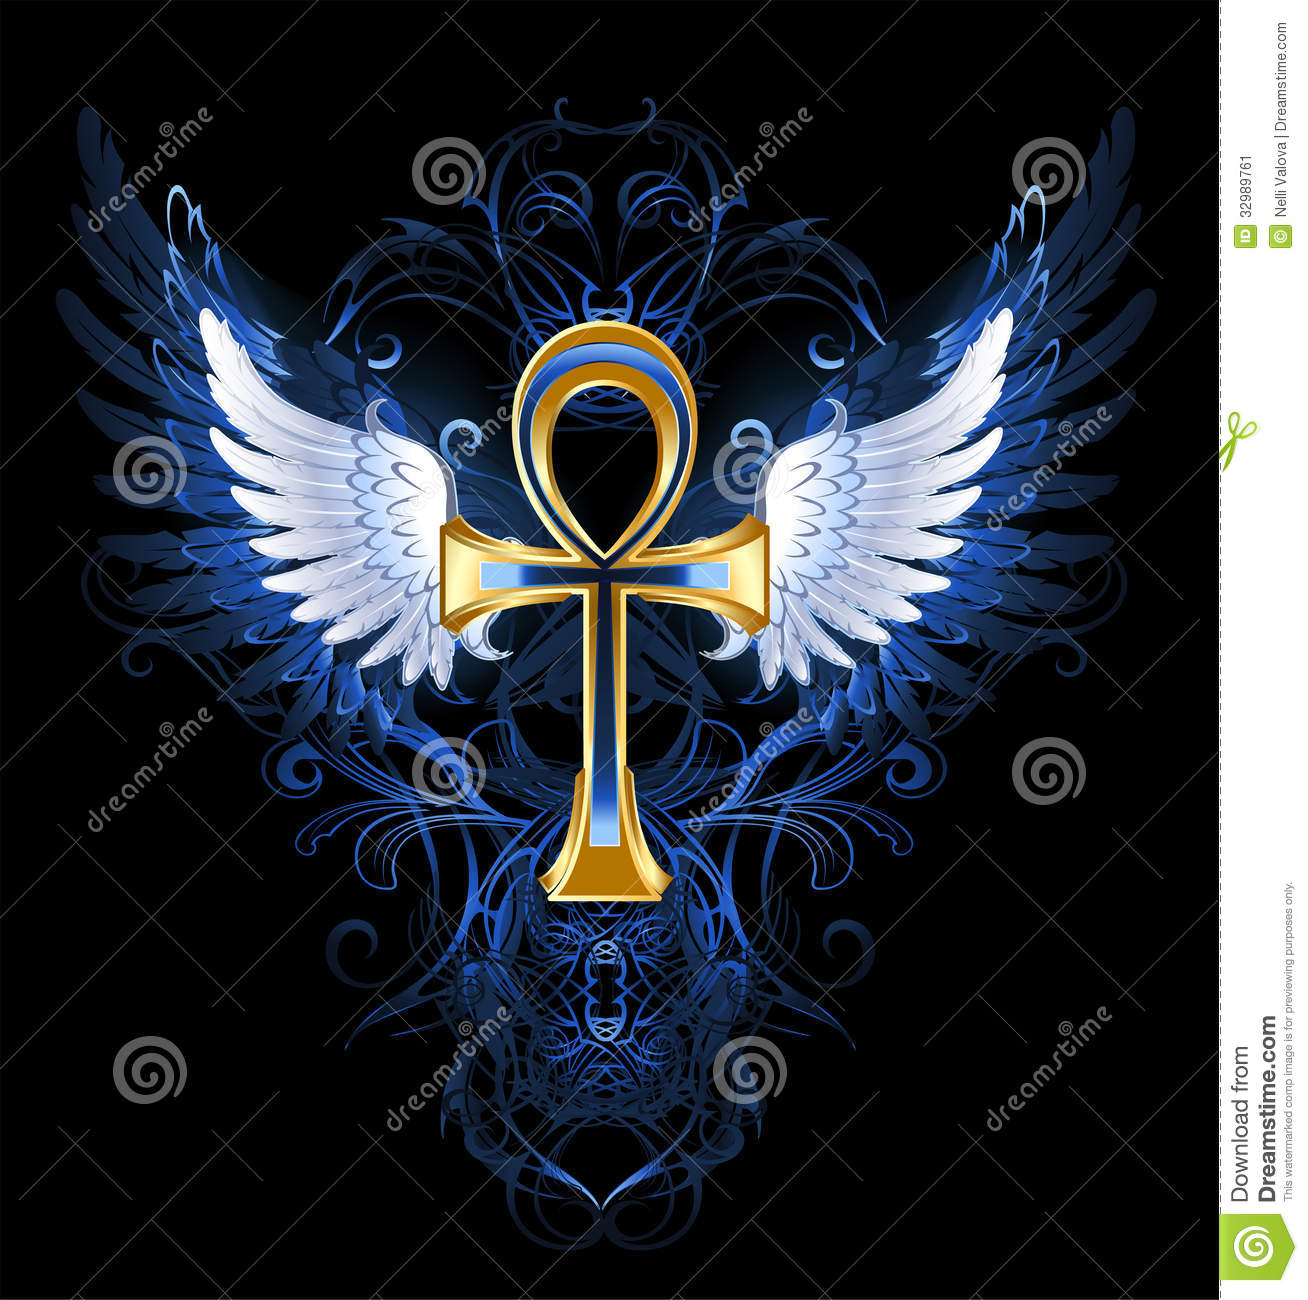 Amazing Ankh Pictures & Backgrounds